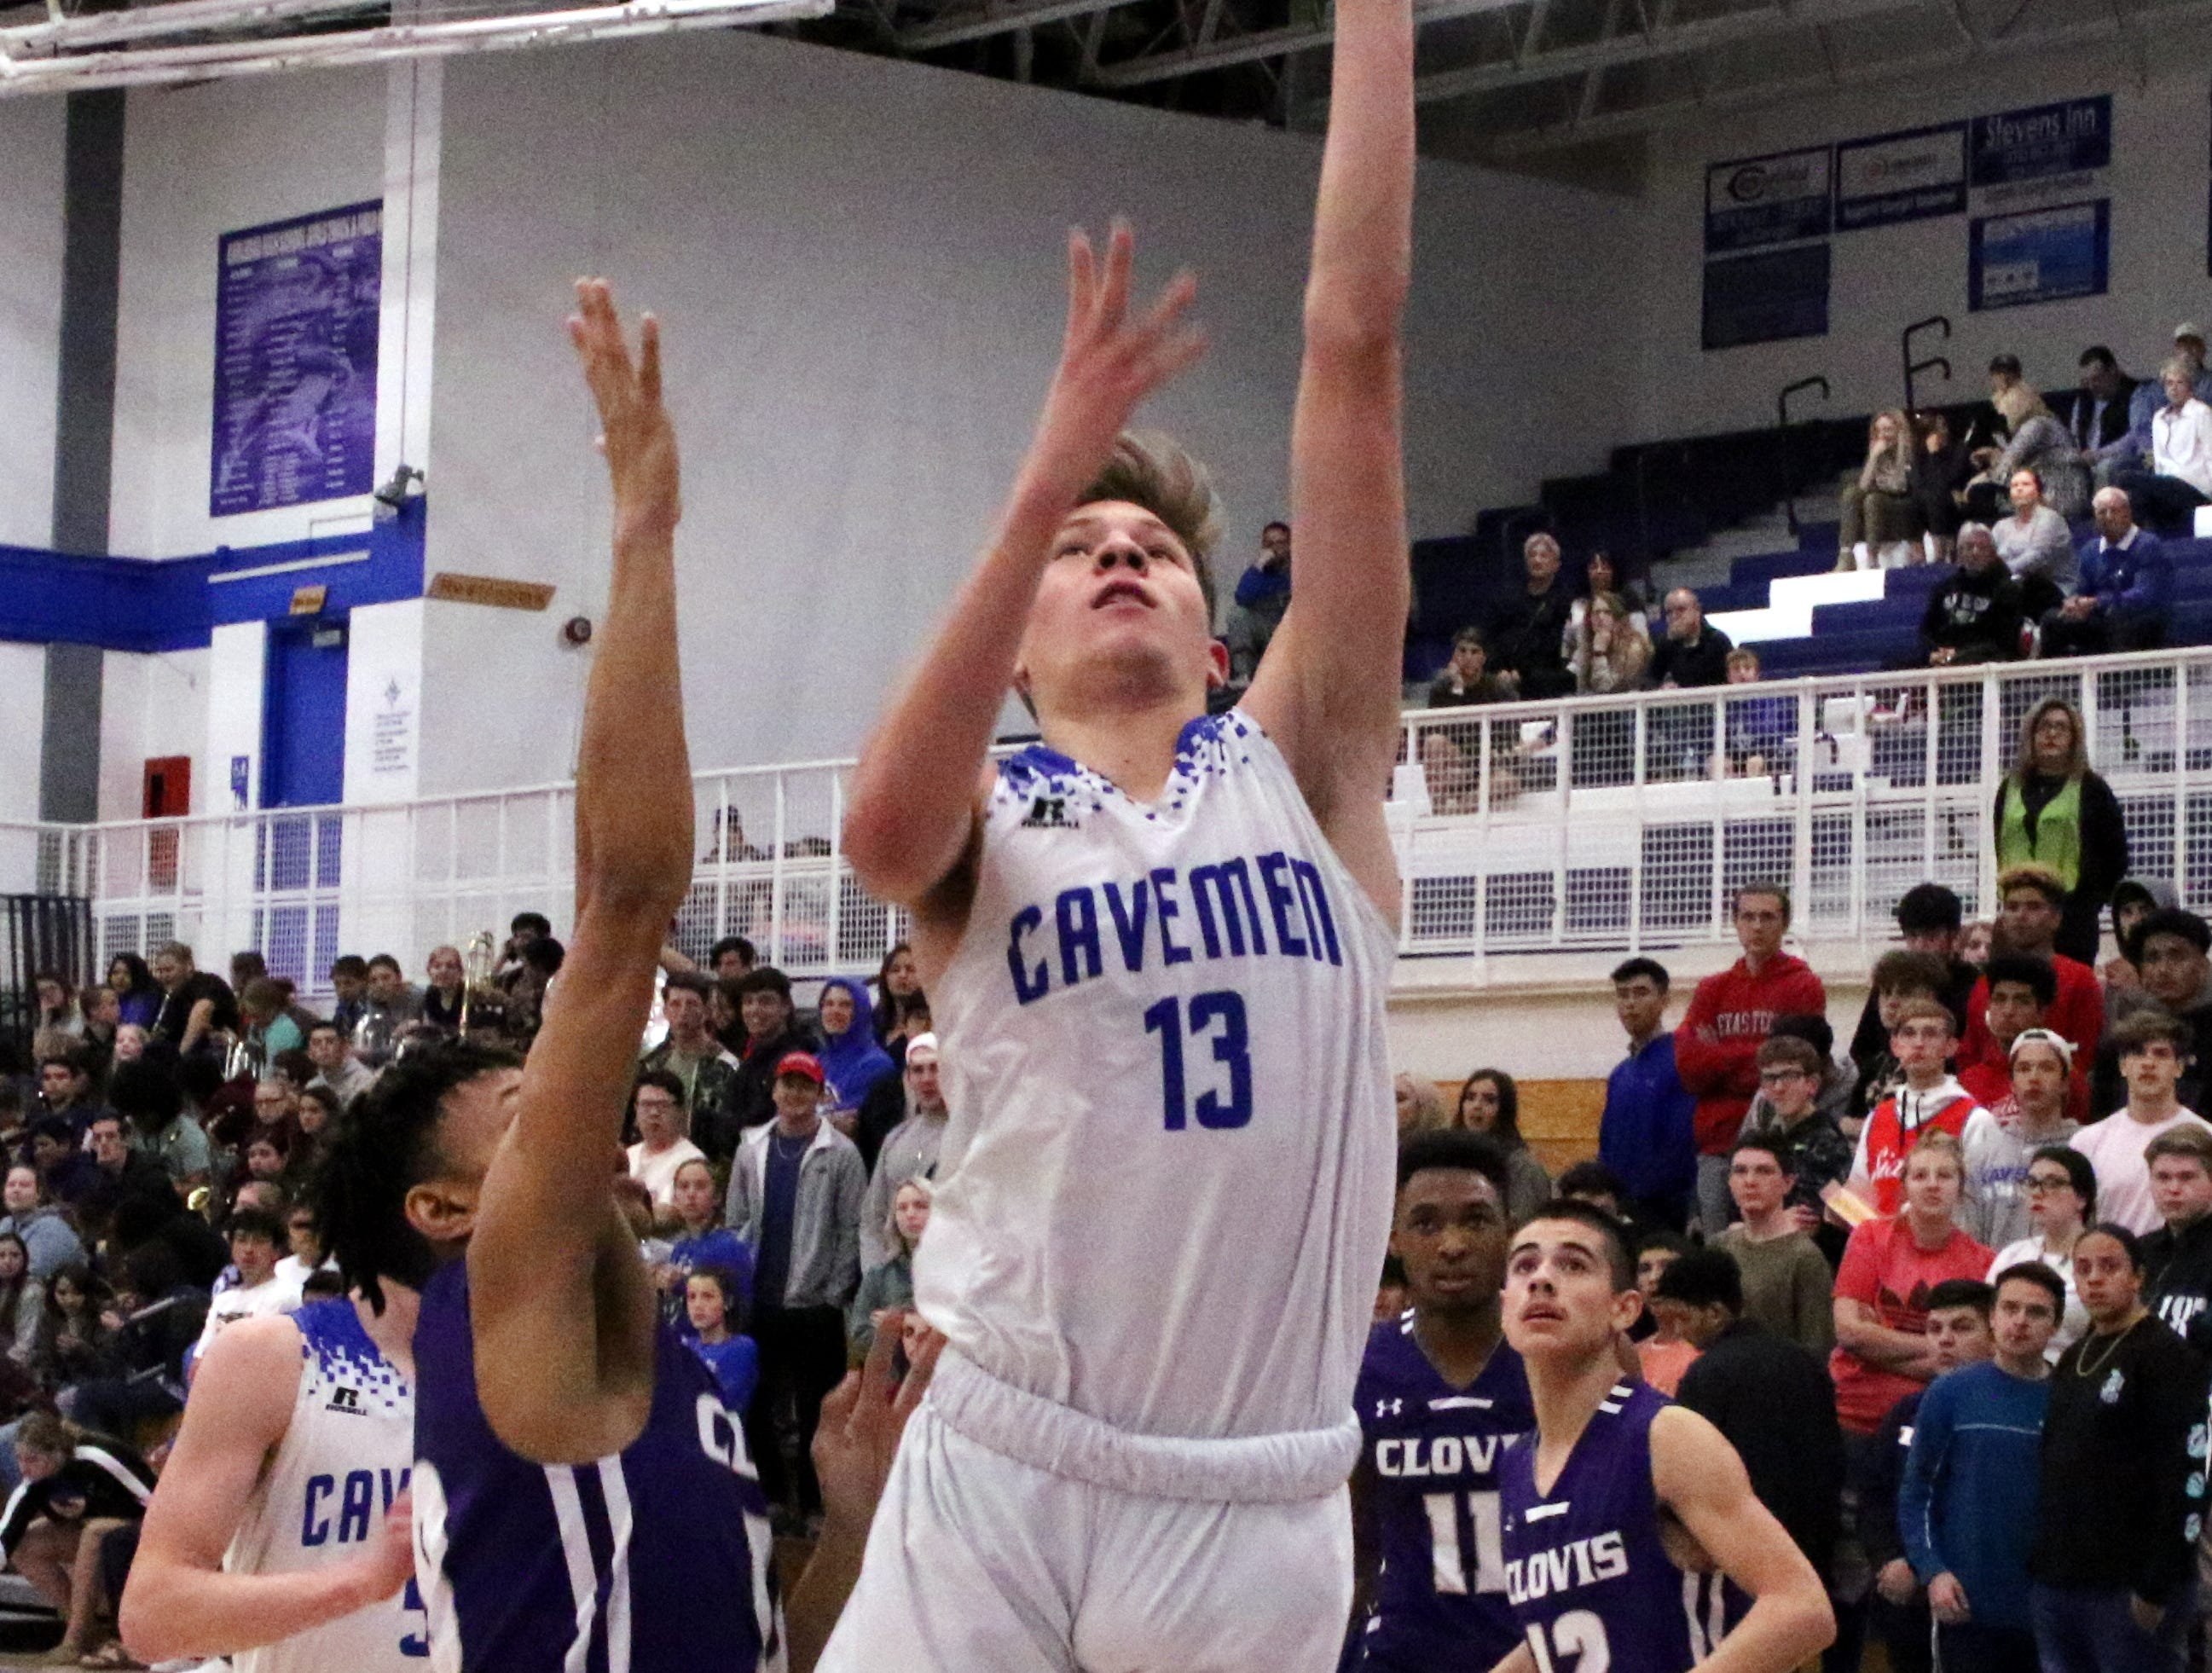 Carlsbad's Stevie Bartlett gets a layup during the first half of Tuesday's game against Clovis. Bartlett finished with three points.